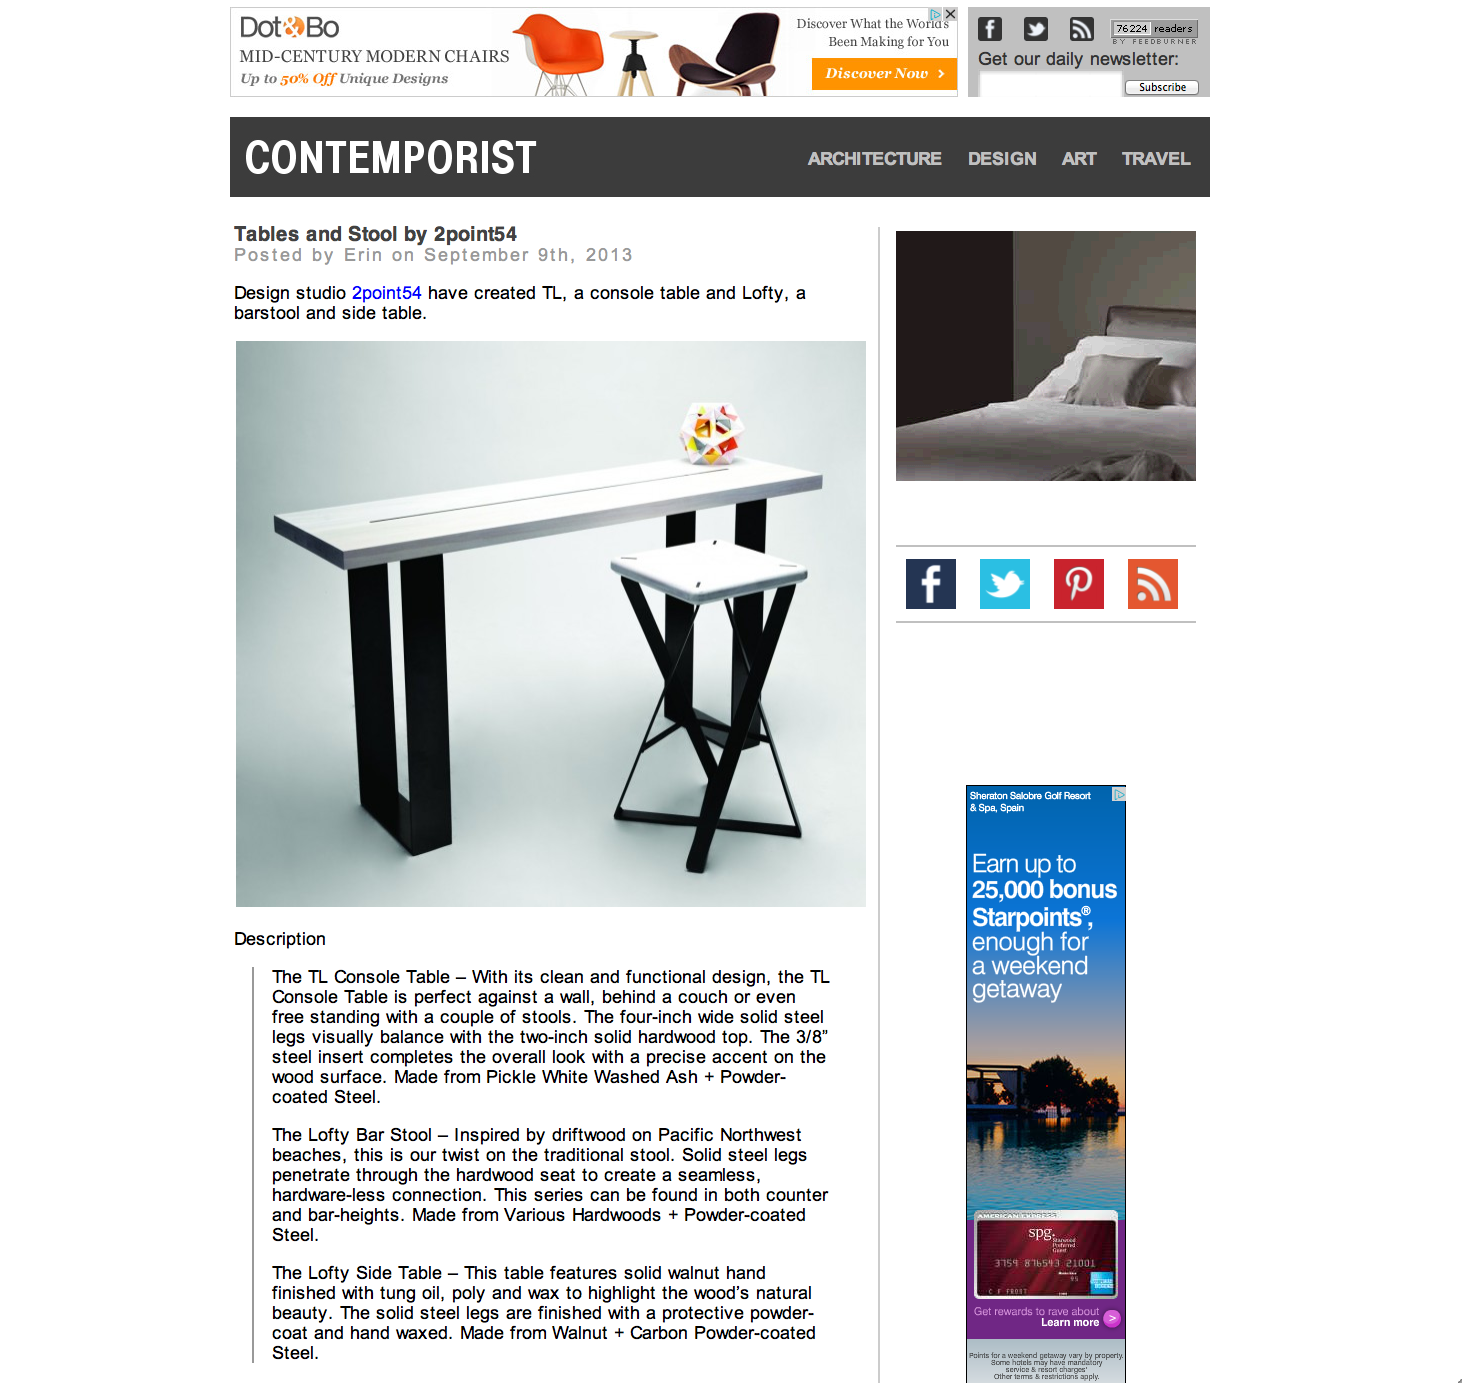 Contemporist_09_09_2013.png